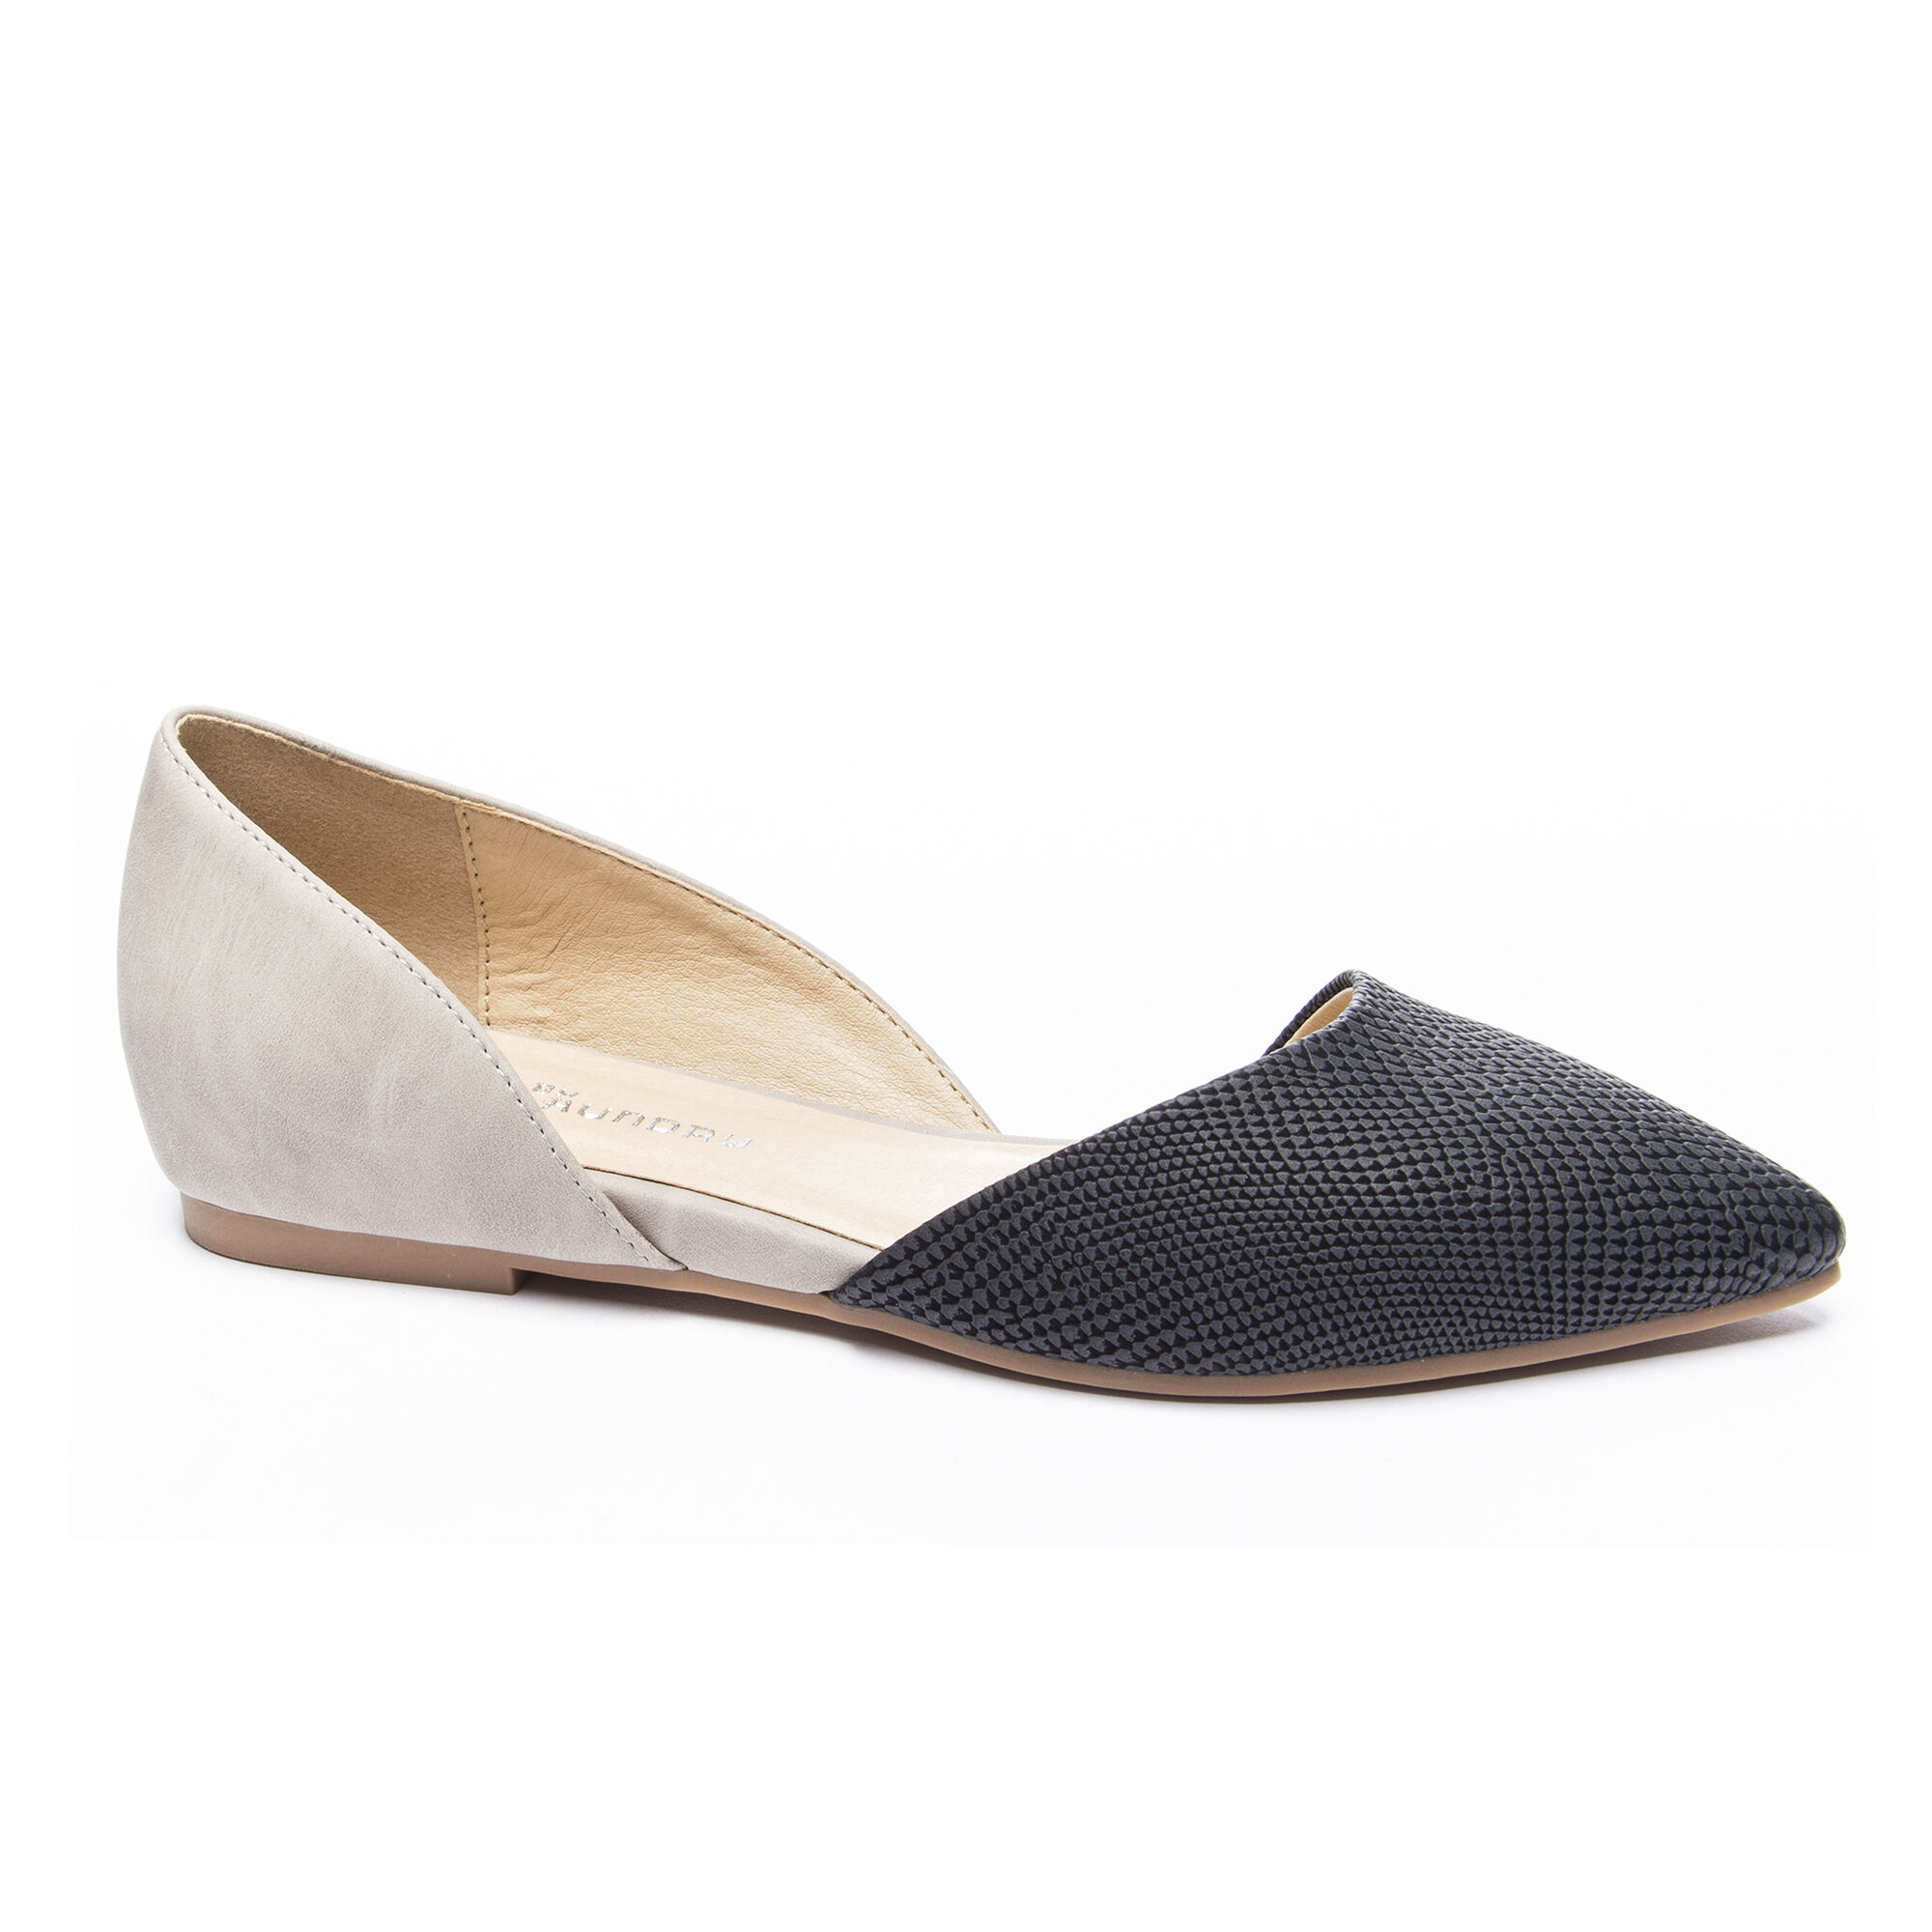 2ea51c780 CL by Laundry Hearty Snake Pointed Toe Flat   Chinese Laundry